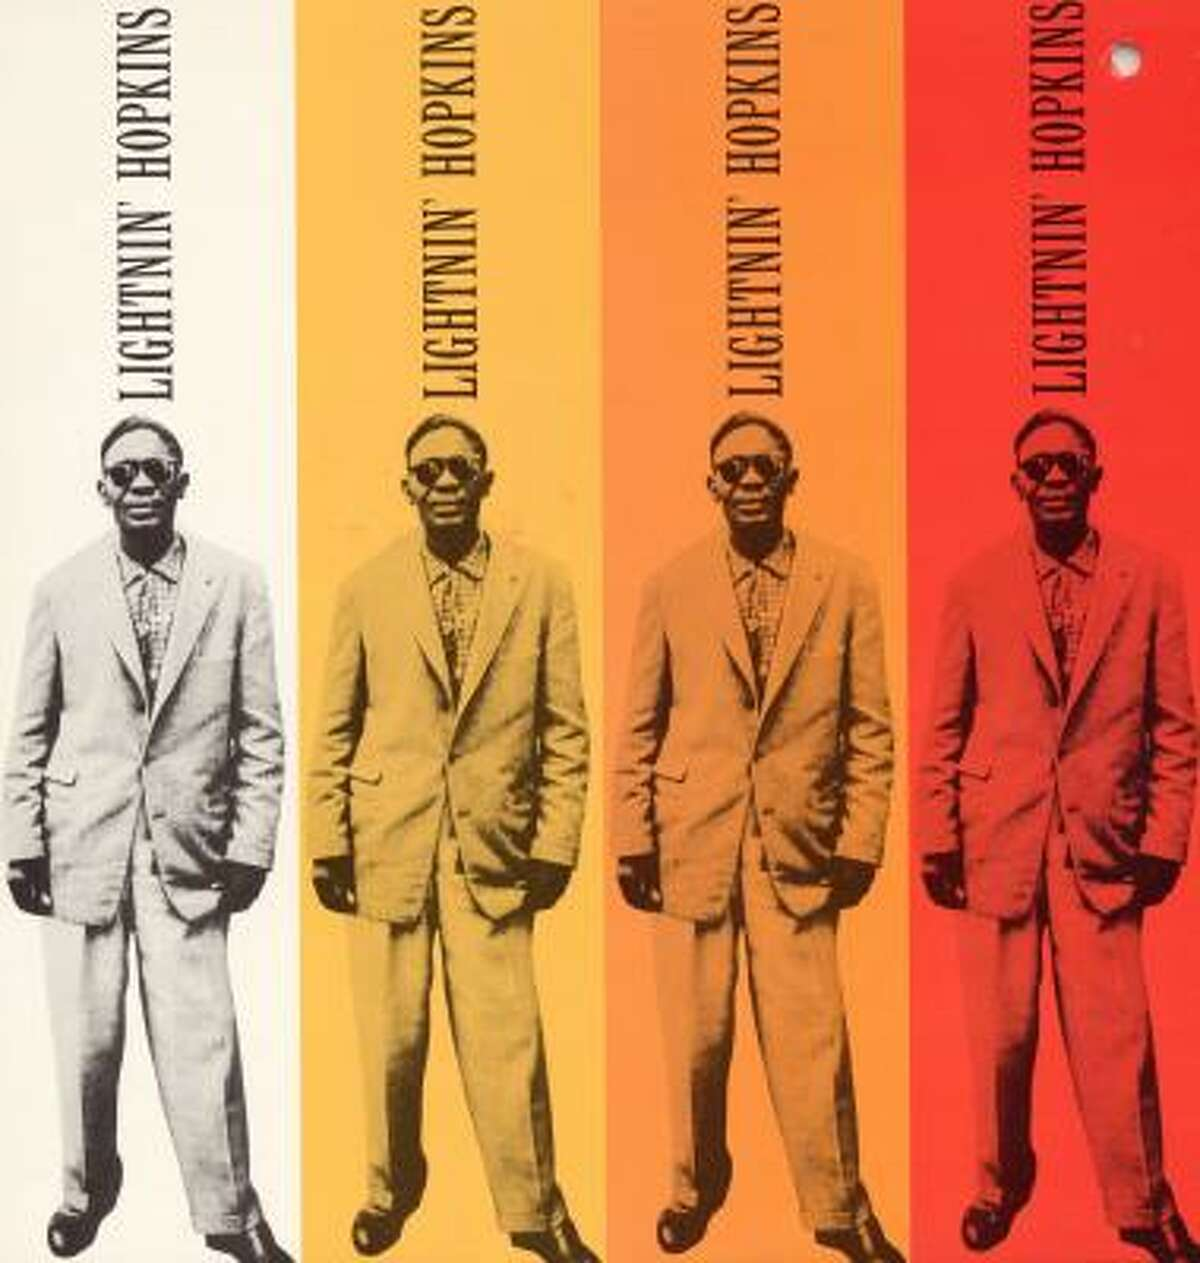 Lightnin' Hopkins cover concept was pinched for two albums released by artists in 2007.